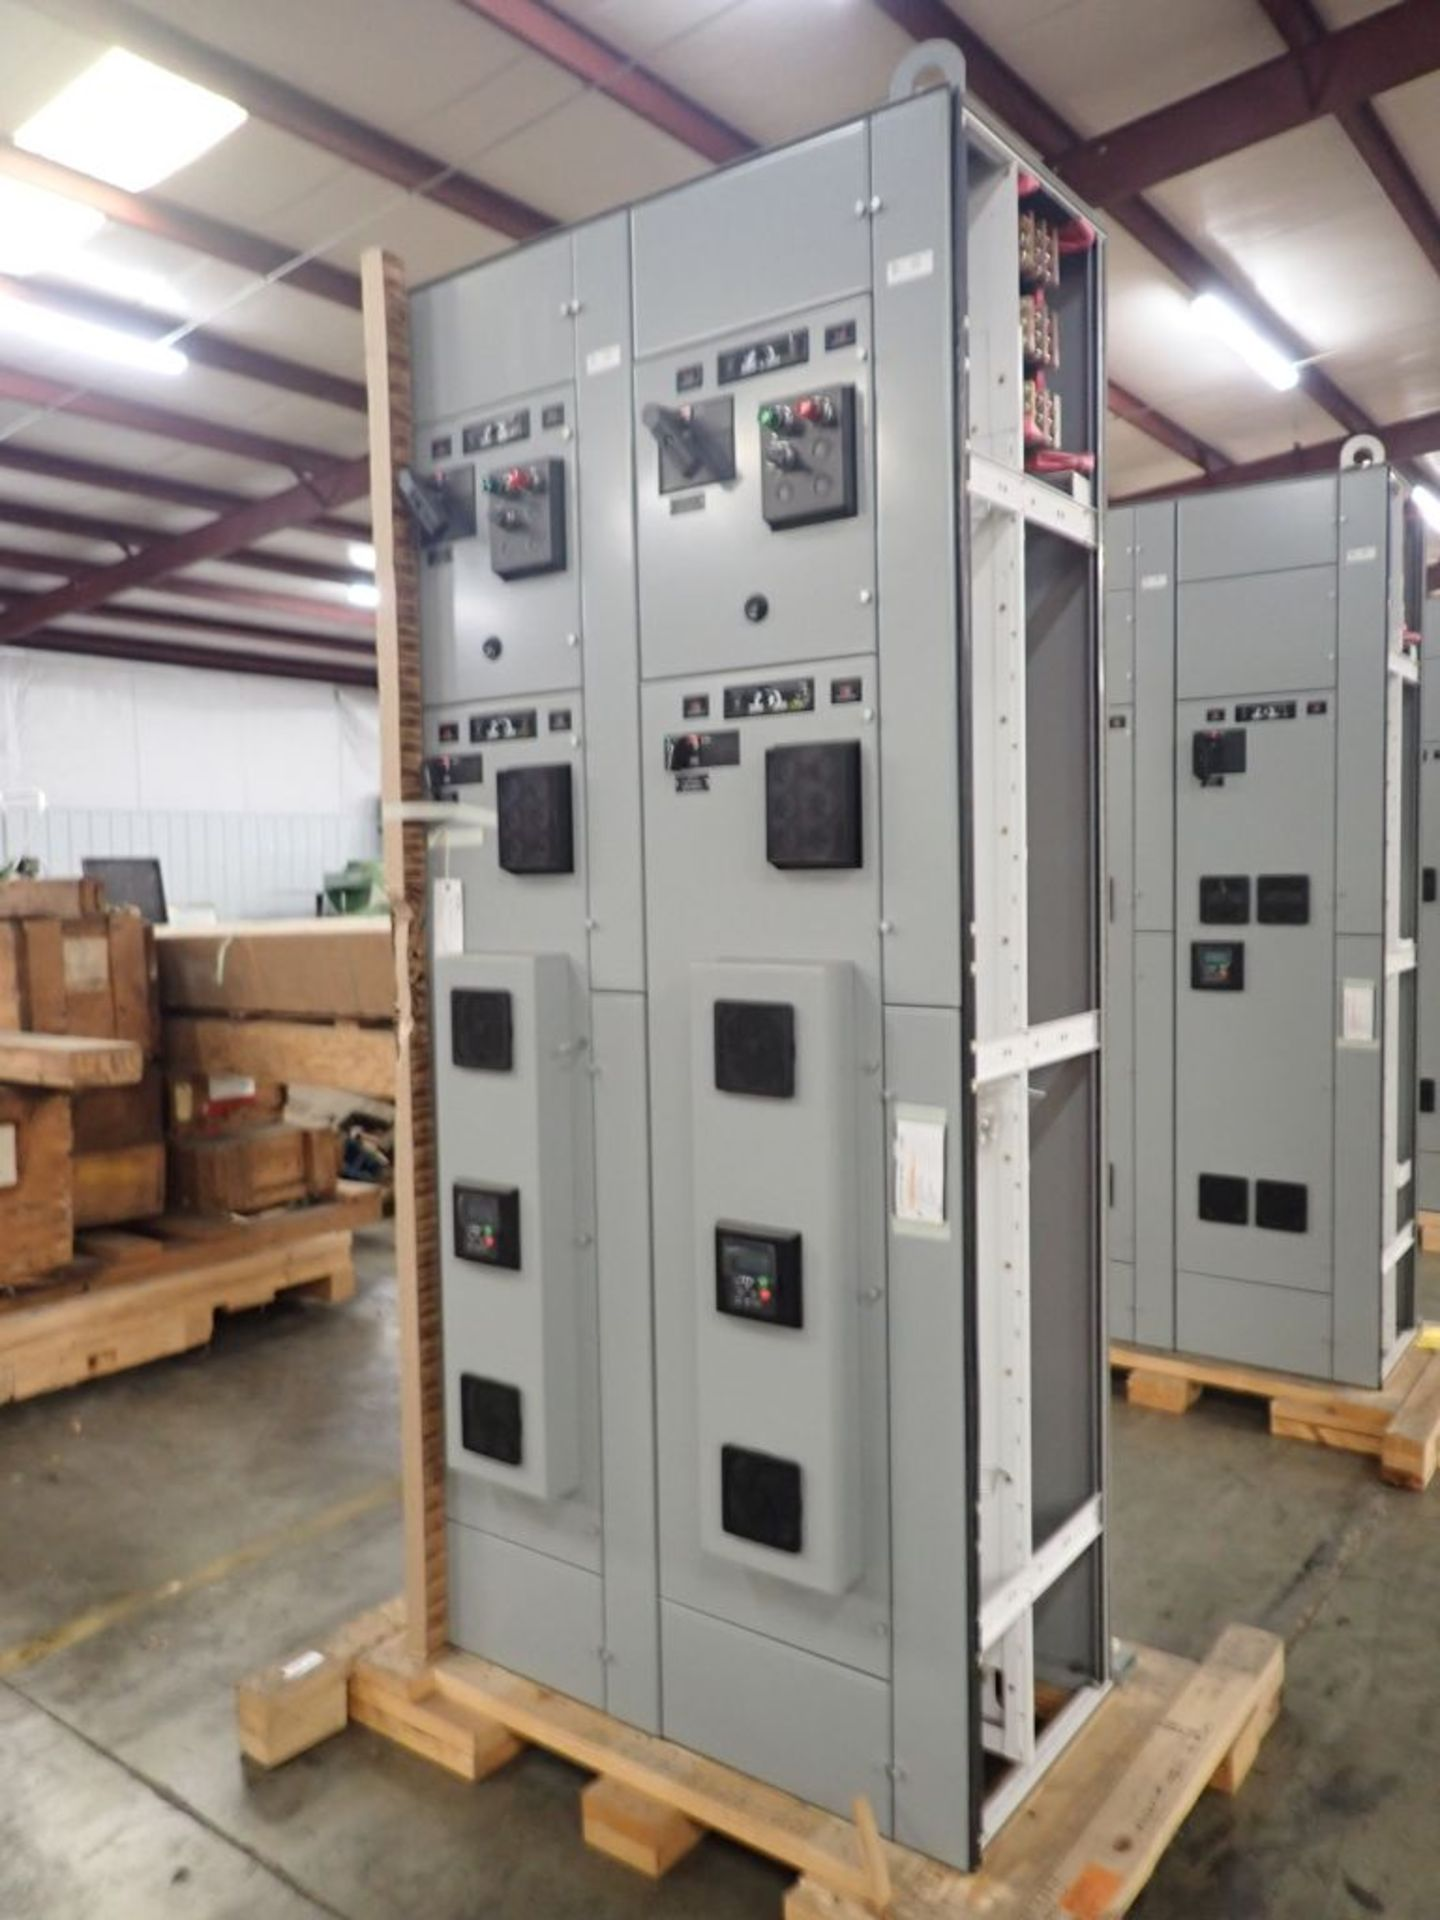 Eaton Freedom 2100 Series Motor Control Center   (2) F206-15A-10HP; (2) SVX900-50A, with Eaton AF